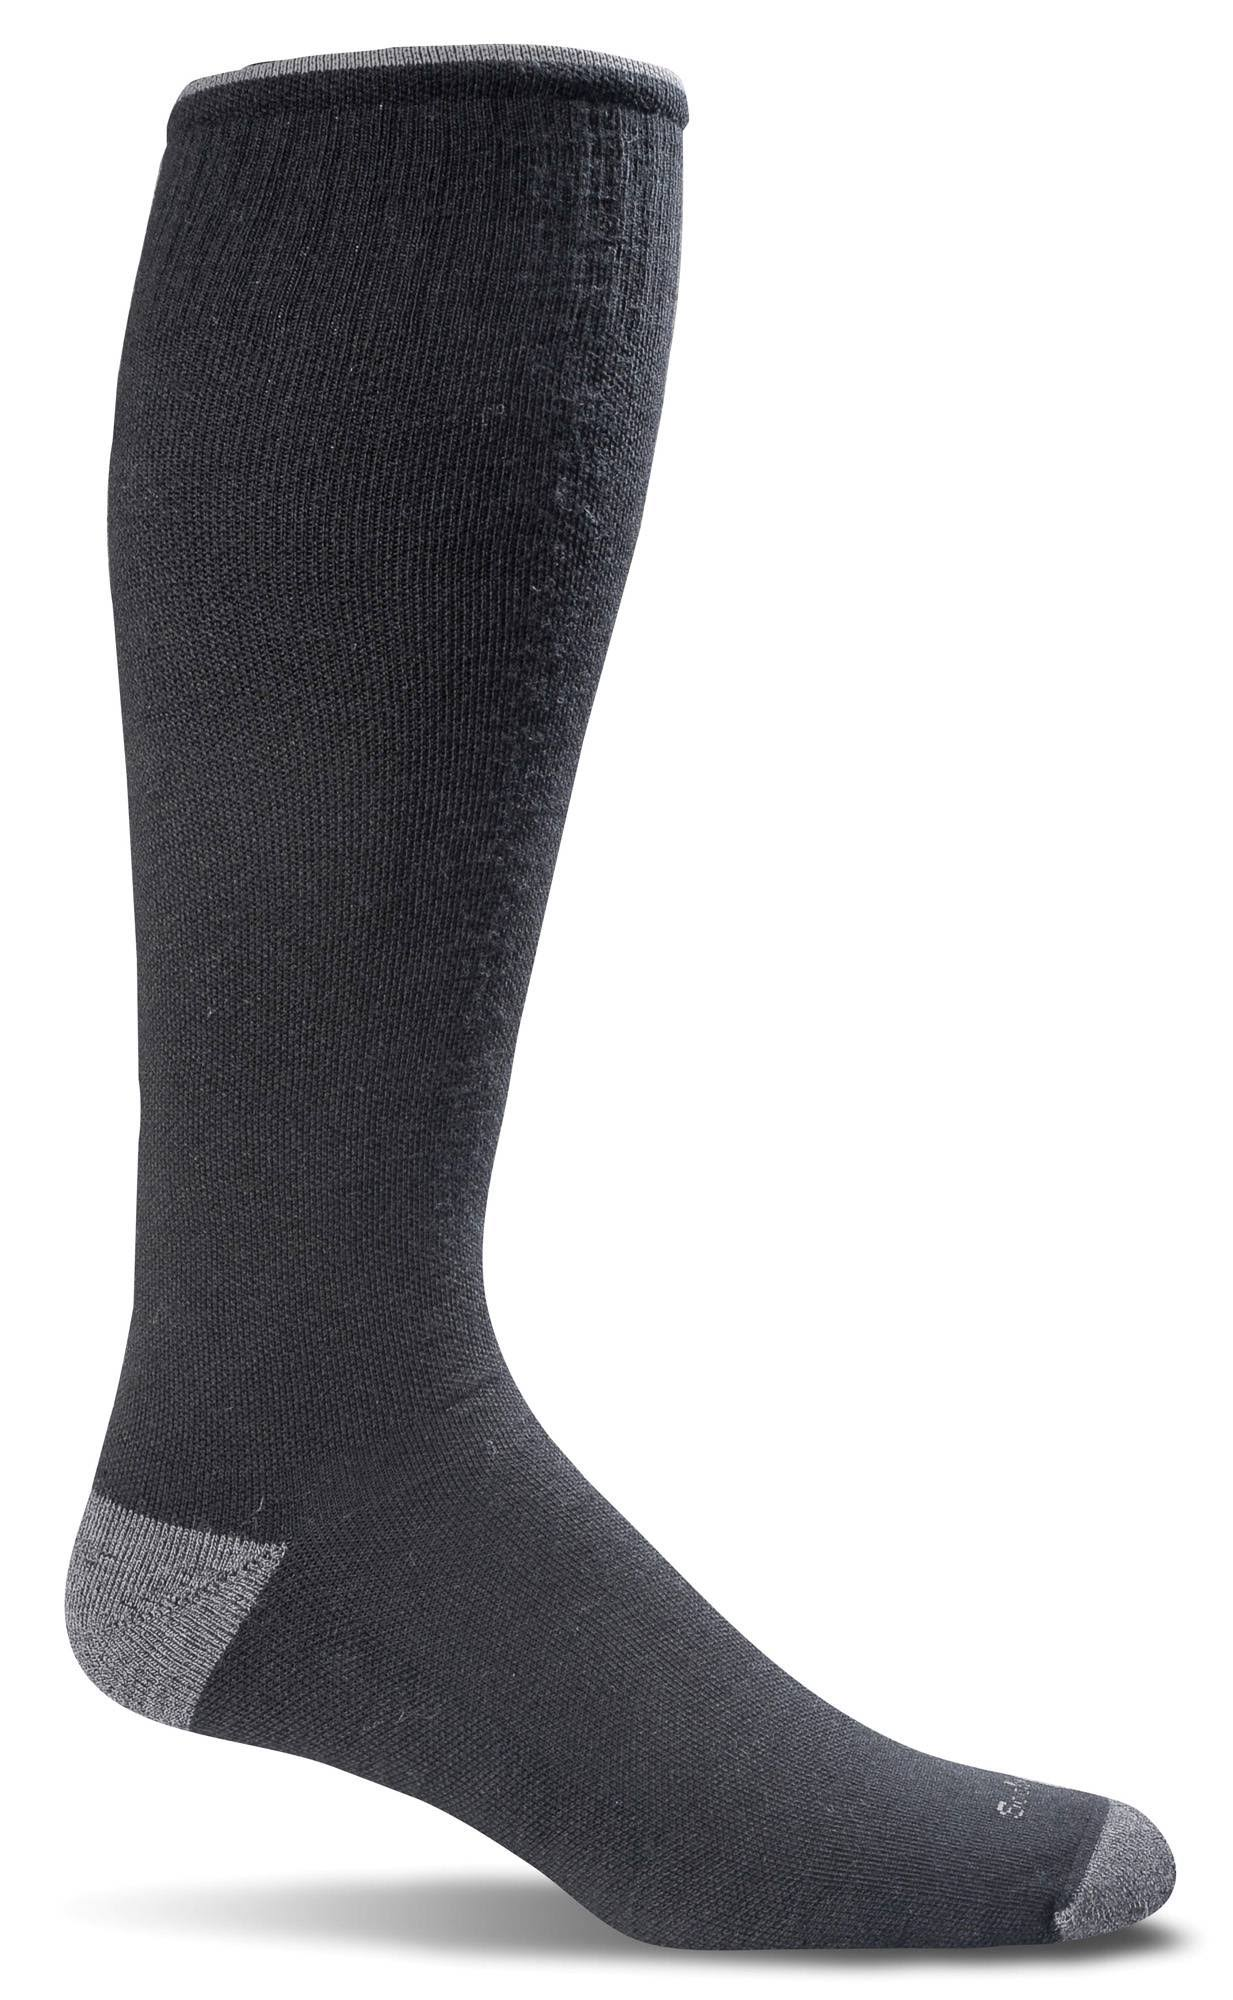 Sockwell Men's Elevation Graduated Compression Sock - Black